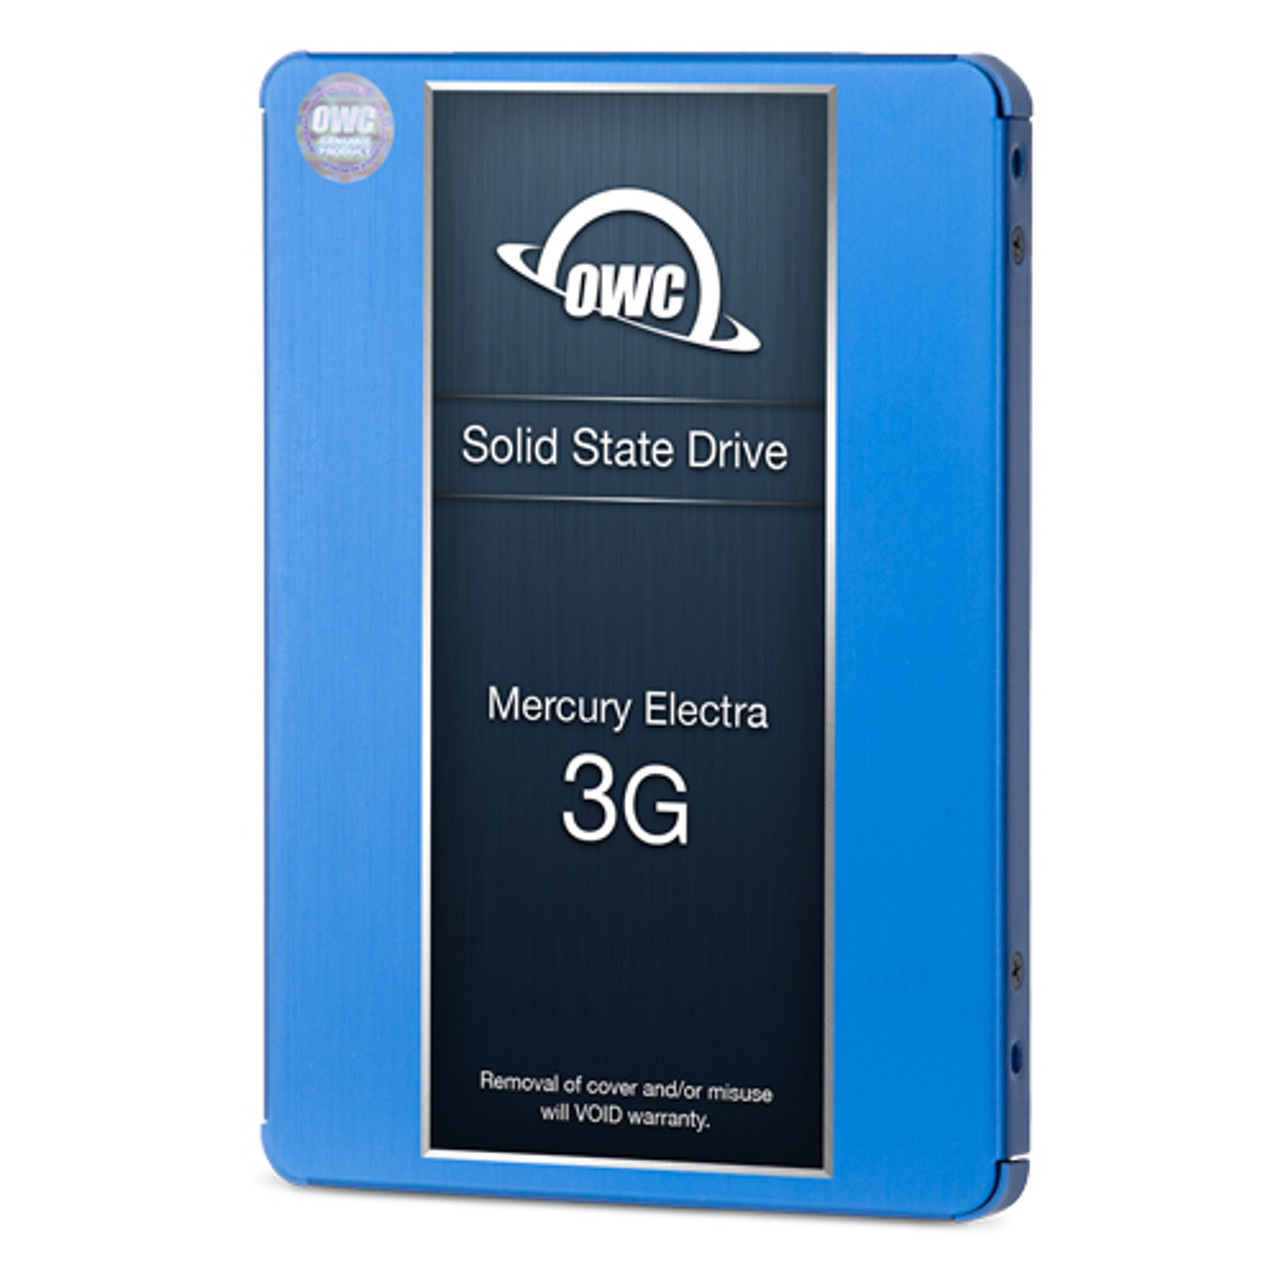 1TB OWC Mercury Electra 3G SSD and Data Doubler (DVD drive to SSD replacement) for select 27-inch 2010 - 2011 iMacs